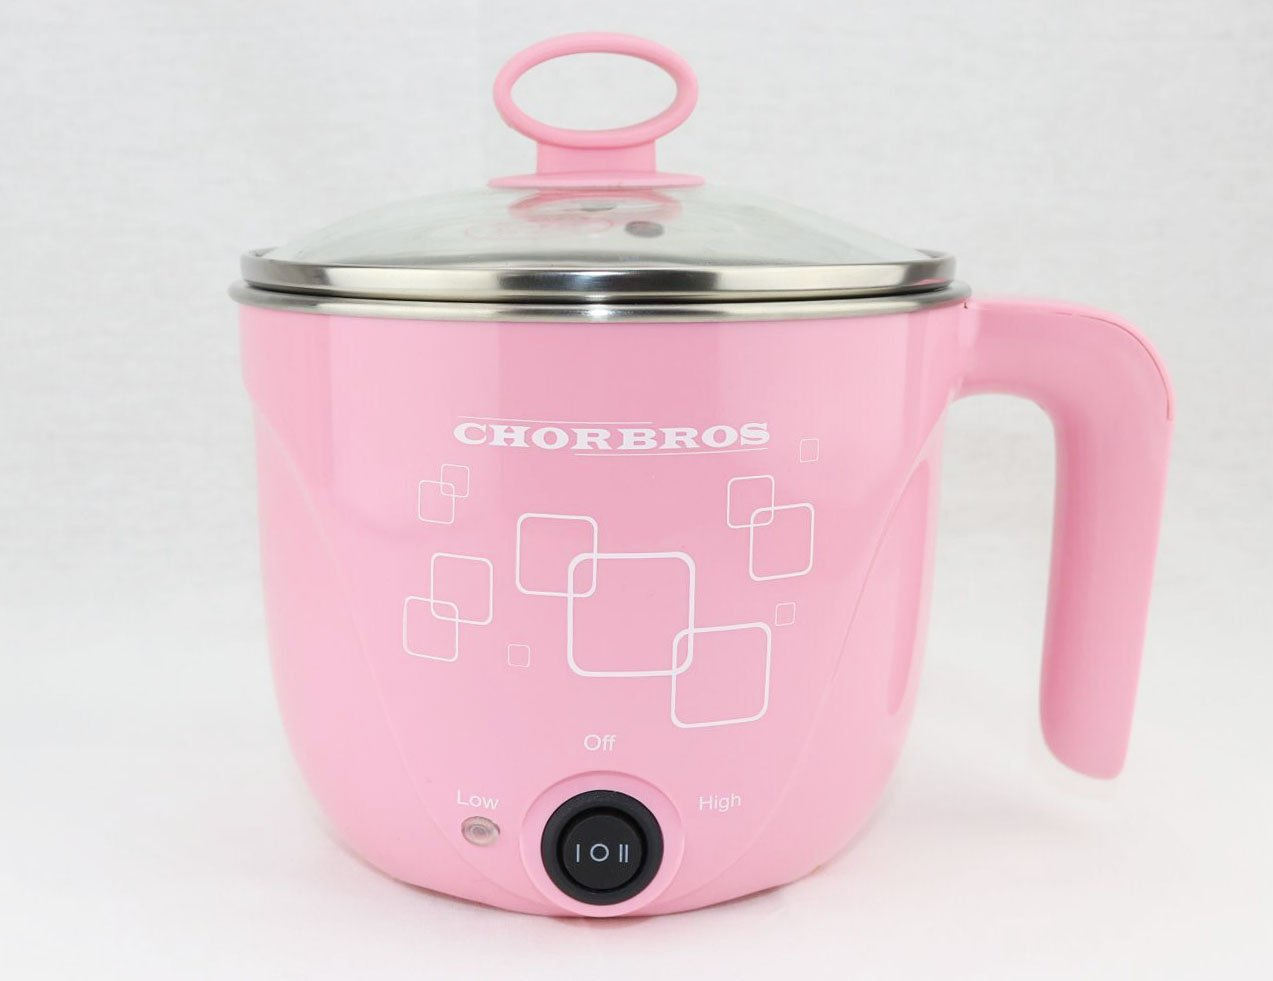 1L CHORBROS Electric Stainless steel pink Hot Pot with Egg Cooker 600W,Travel Pot,Personal pot,Cute Pot,Instant Noodles Pot,电火锅,学生锅